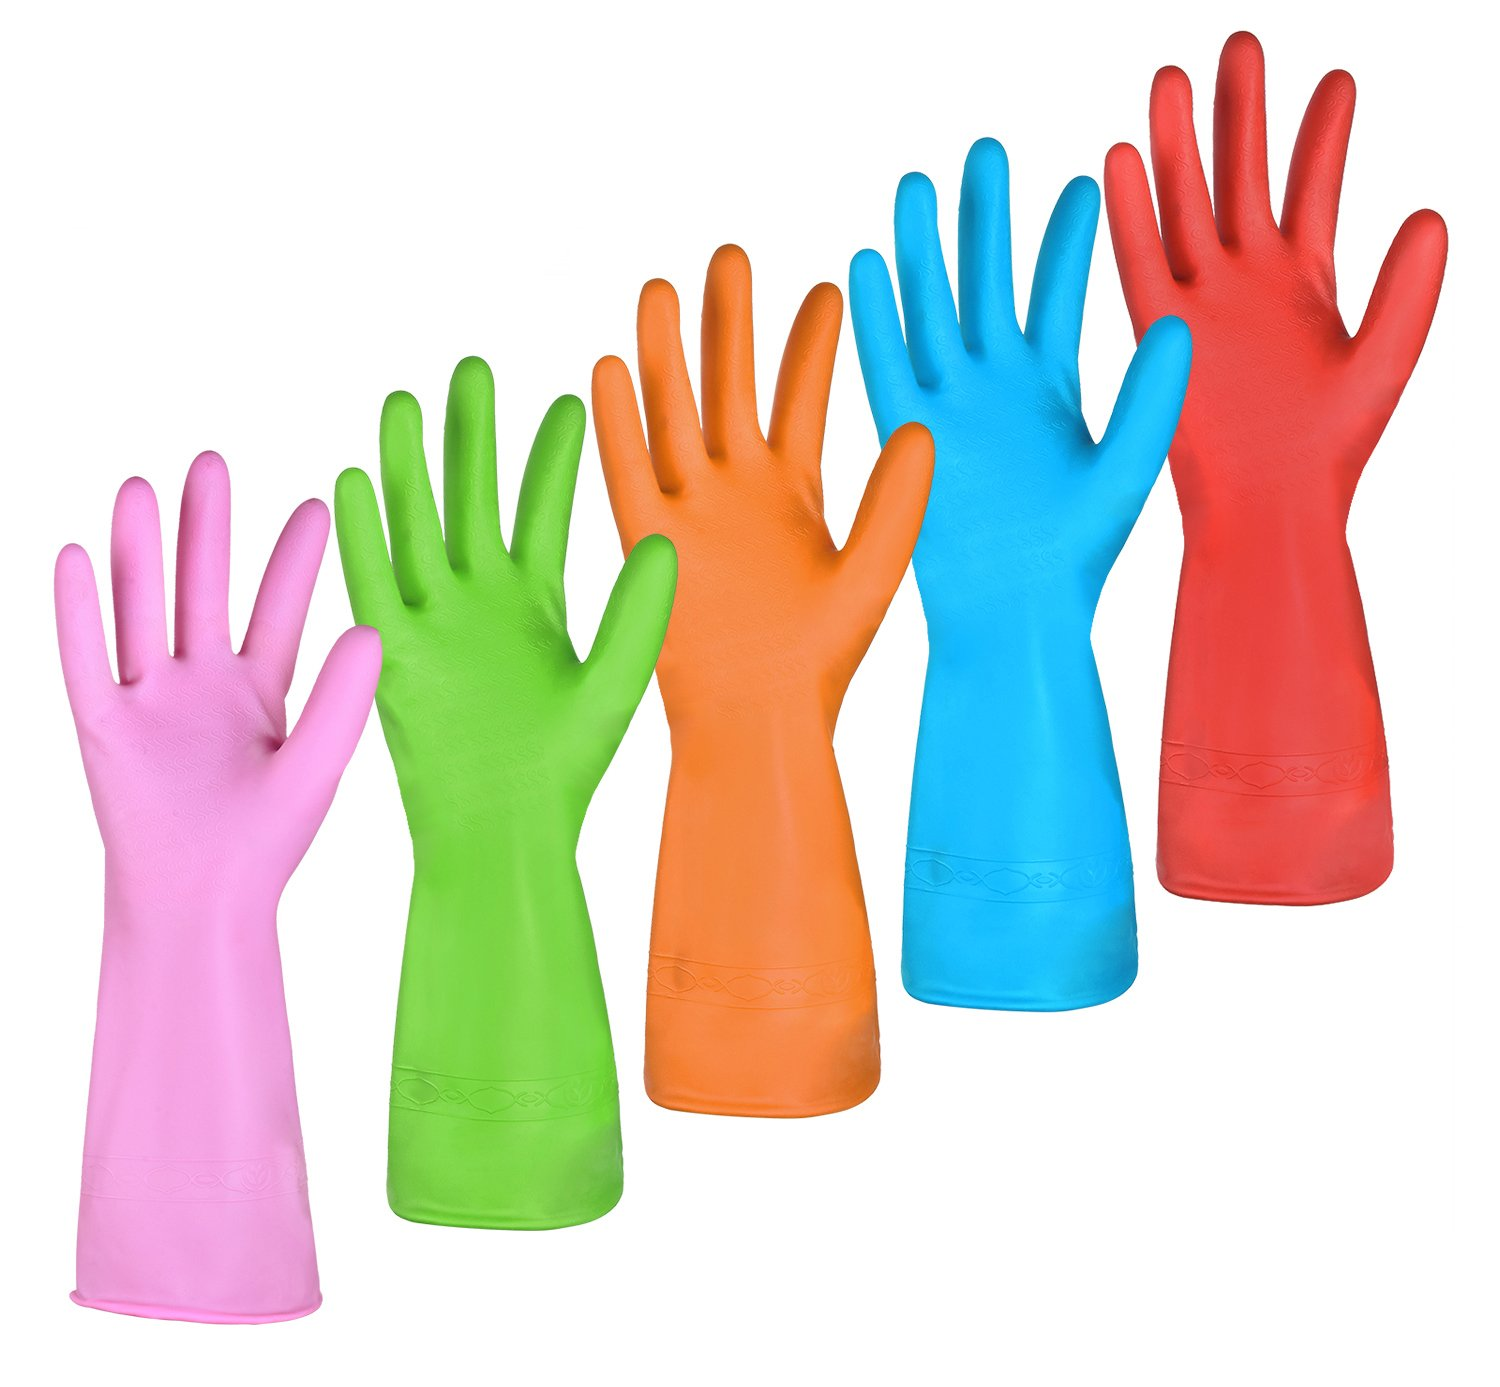 Rubber Household Gloves Non Latex Kitchen Dishwashing Cleaning Glove 5 Pairs Medium